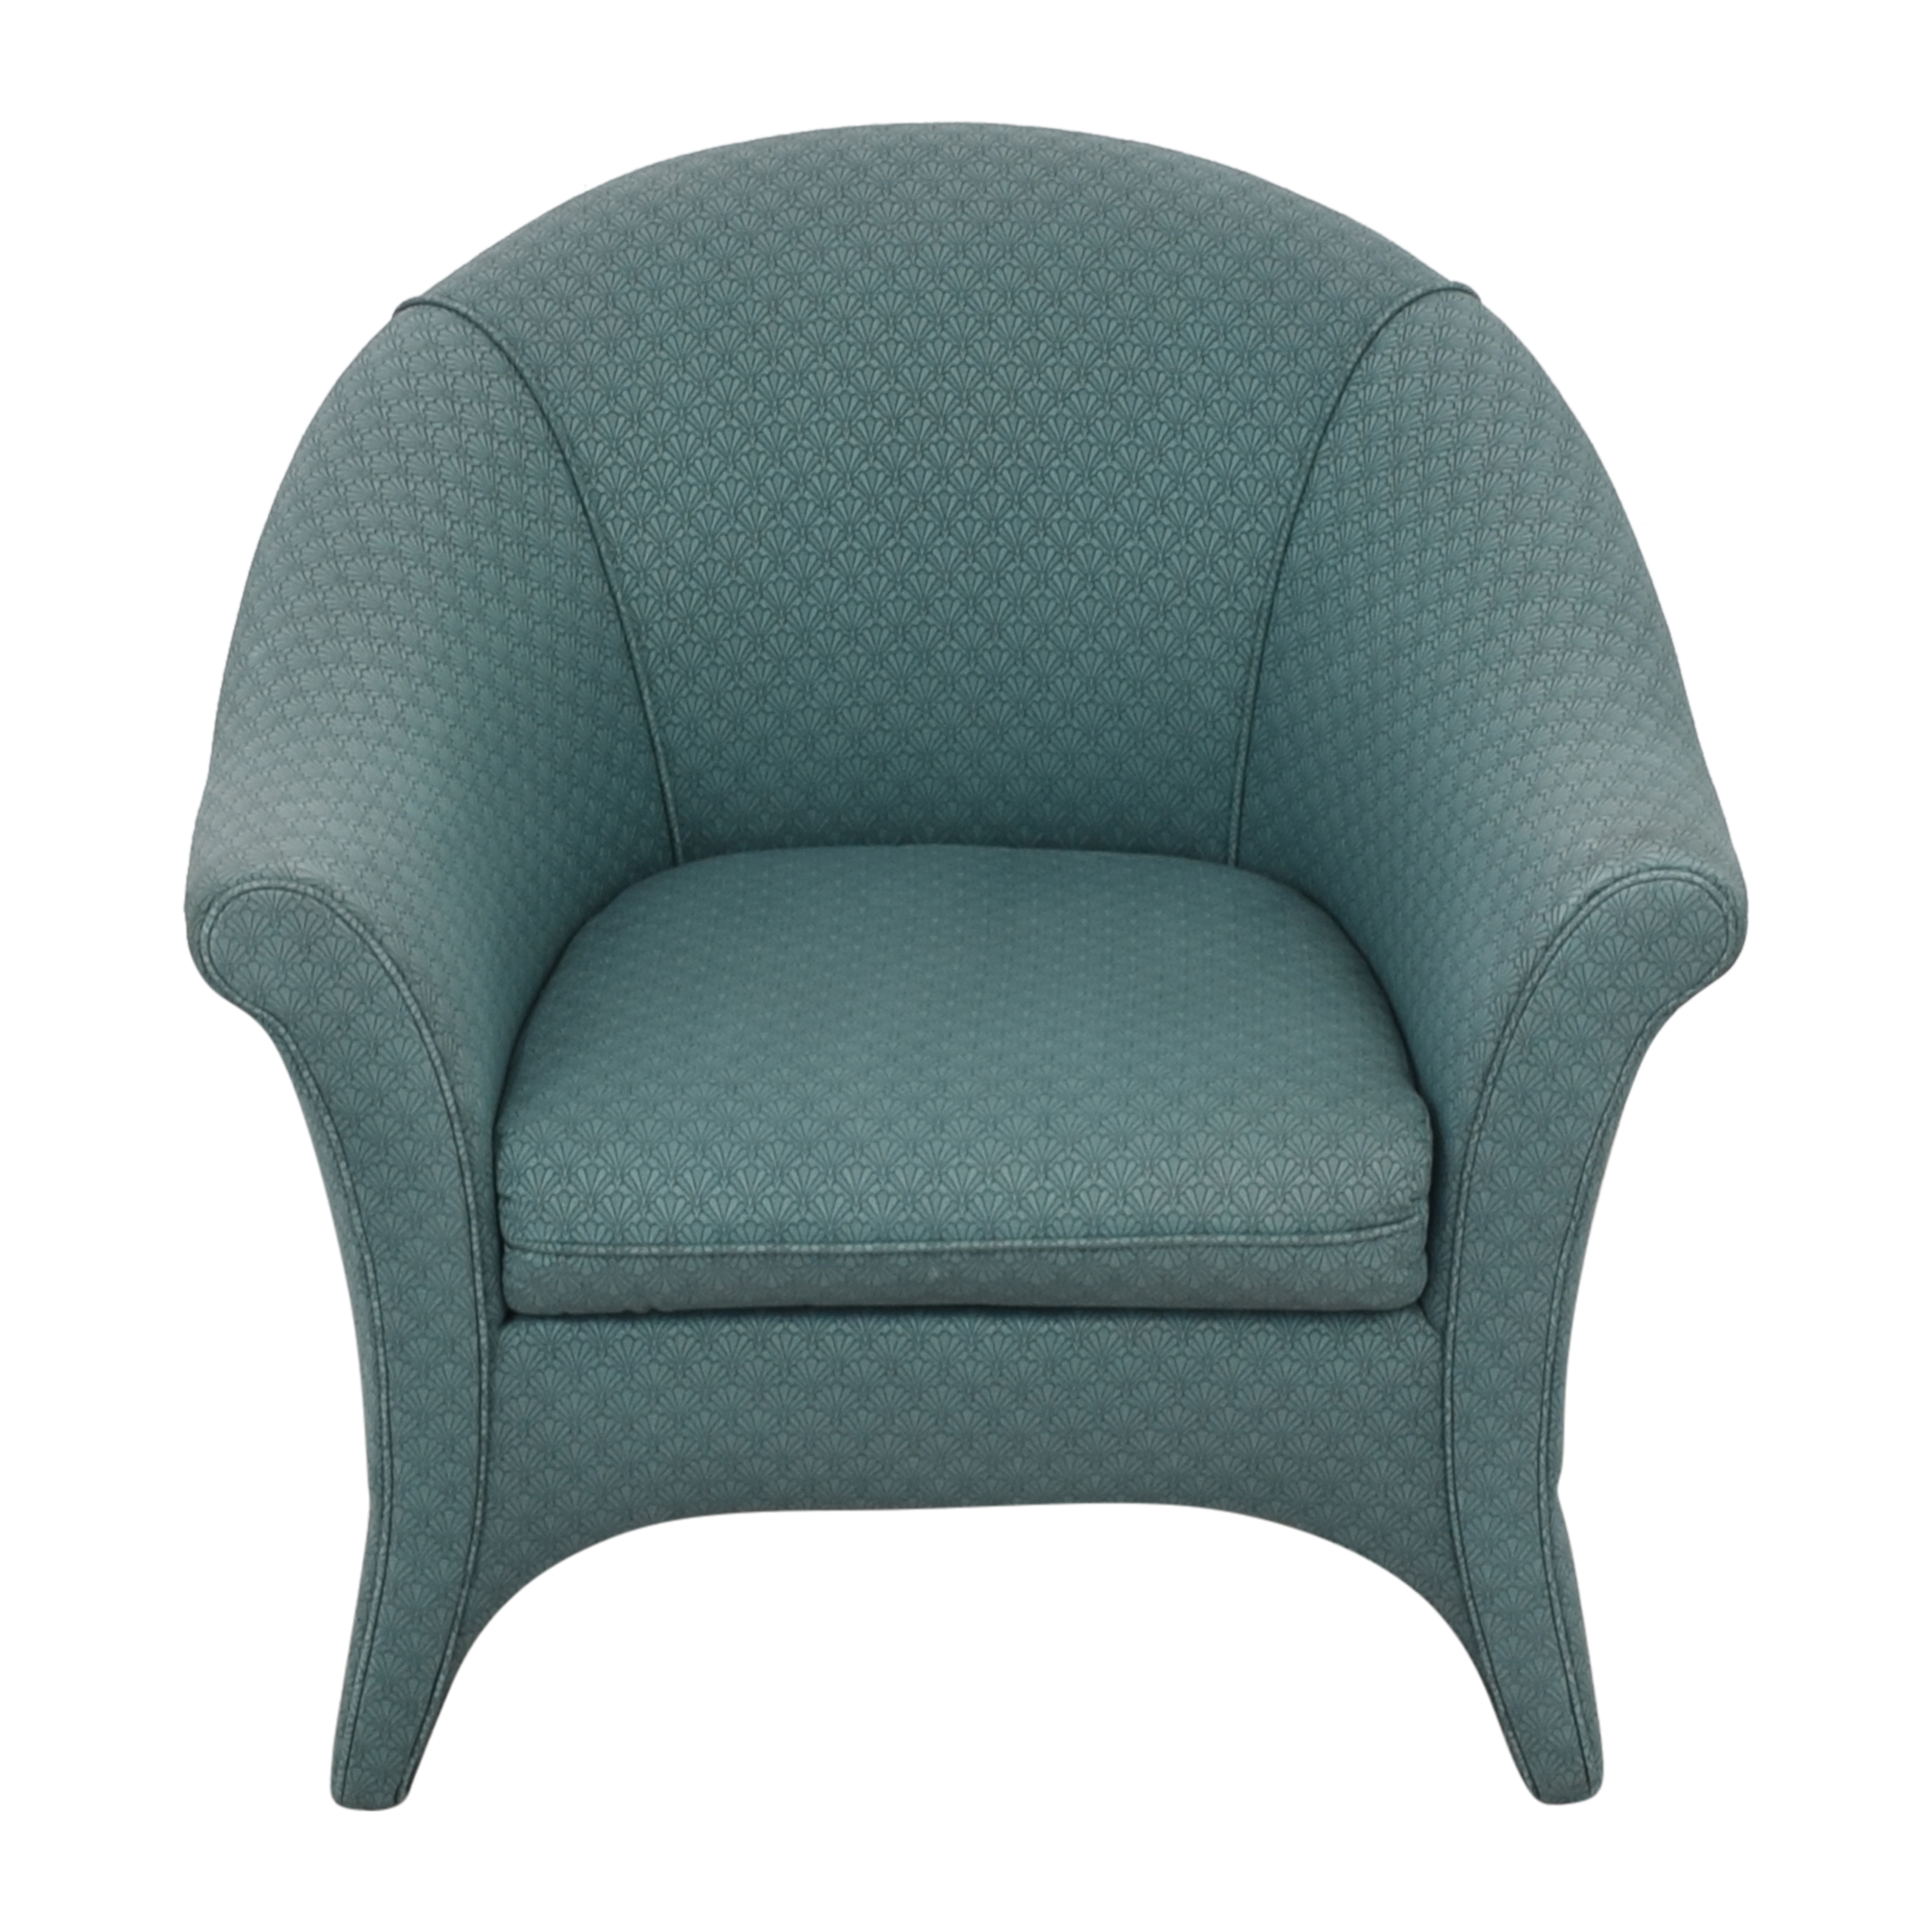 Crate & Barrel Crate & Barrel Upholstered Armchair Chairs